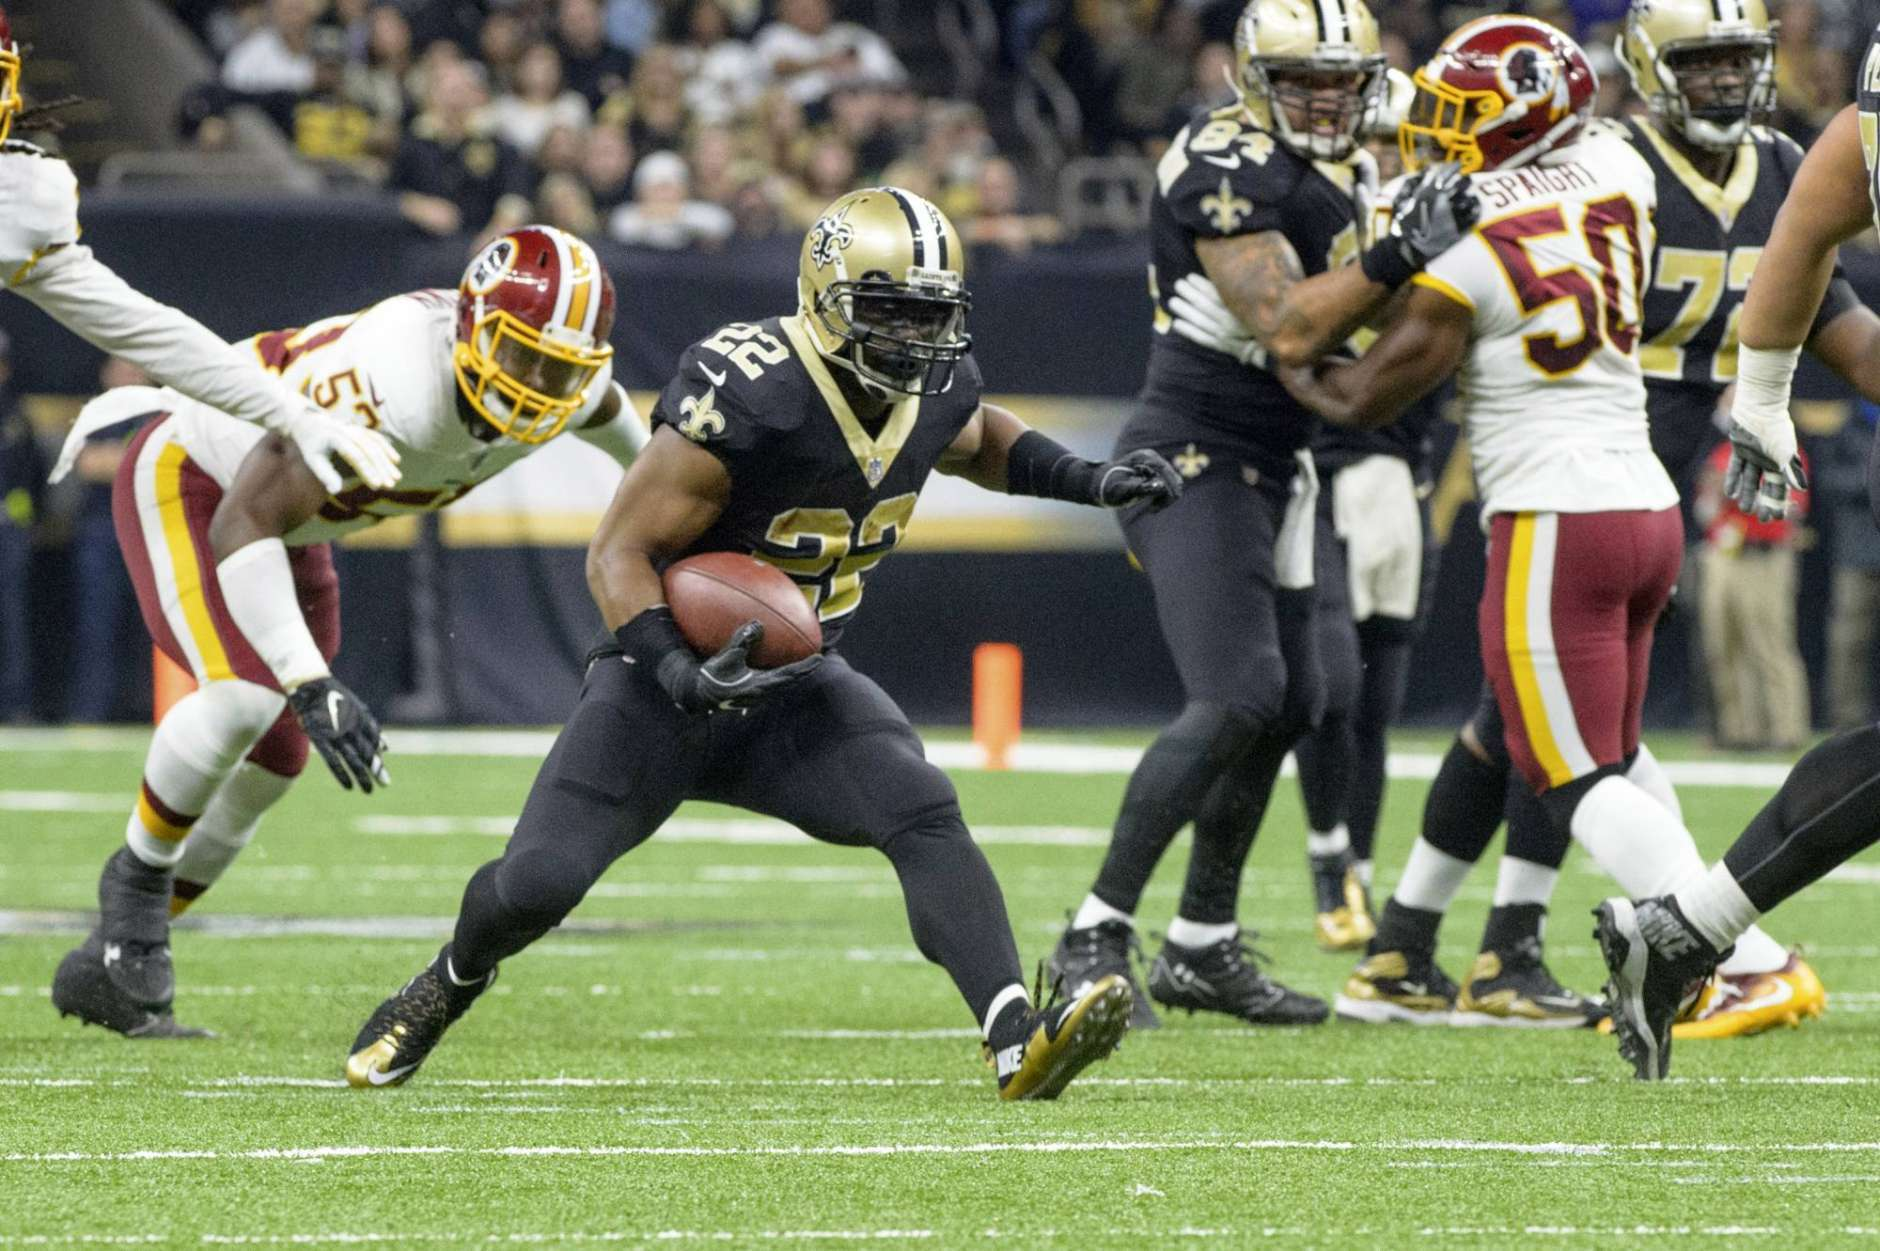 Saints running back Mark Ingram runs the ball as The New Orleans Saints take on The Washington Redskins during an NFL football game in the Mercedes-Benz Superdome, Sunday, Nov. 19, 2017 in New Orleans.   (Scott Clause/The Daily Advertiser via AP)